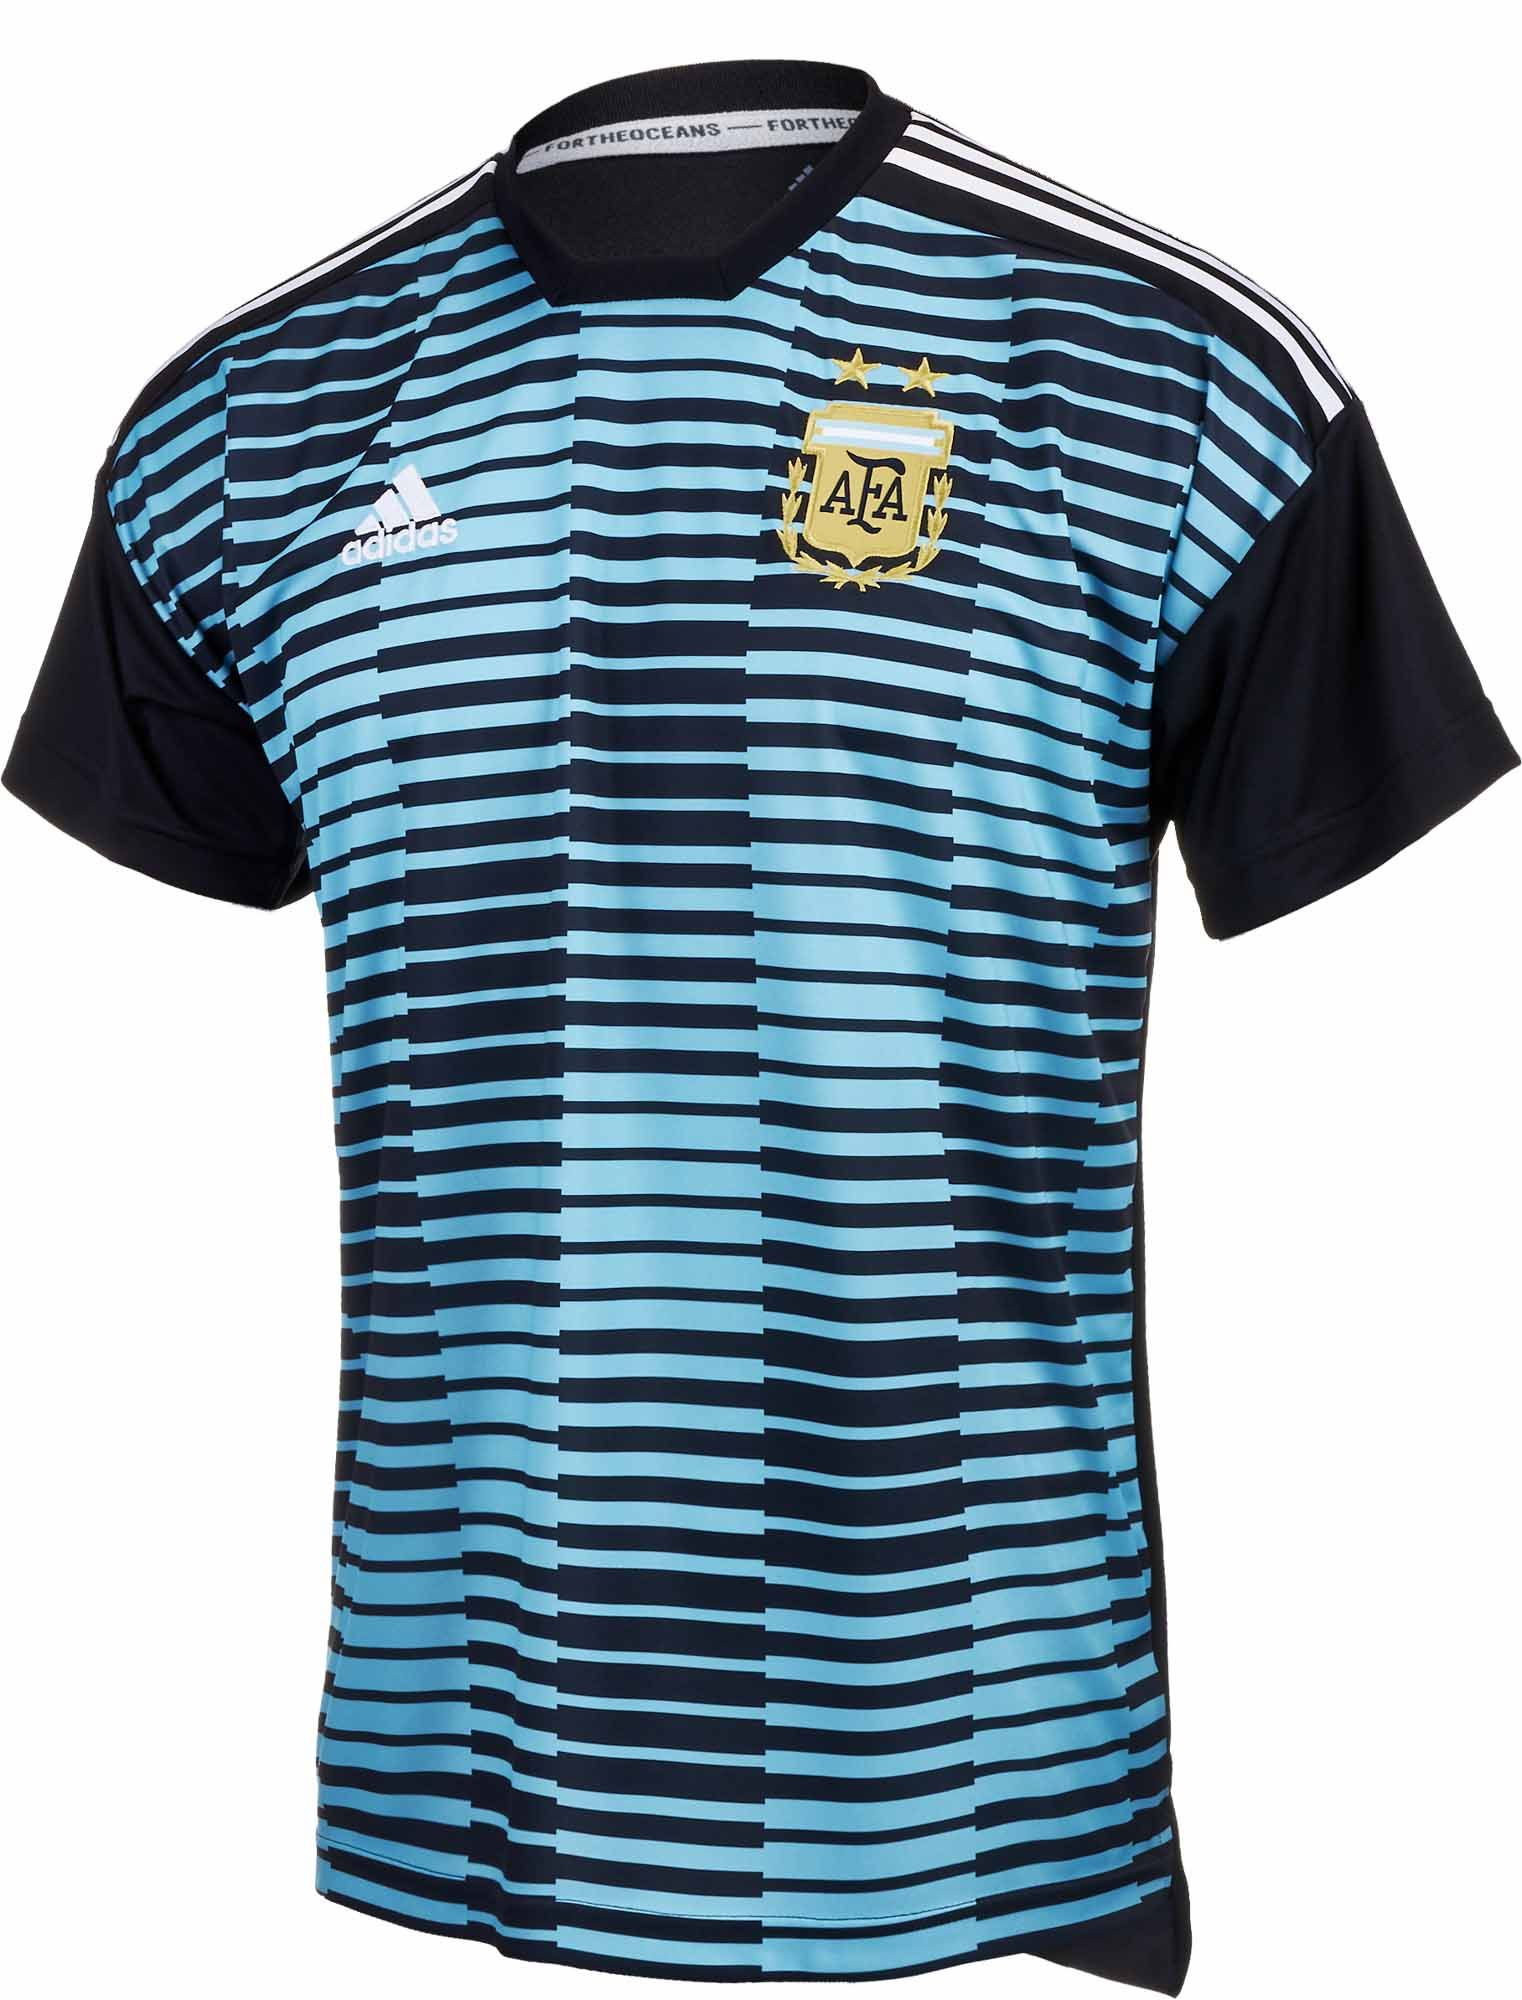 d47750b0f09 Kids adidas Argentina Prematch Jersey for 2018/19. Buy it from SoccerPro,